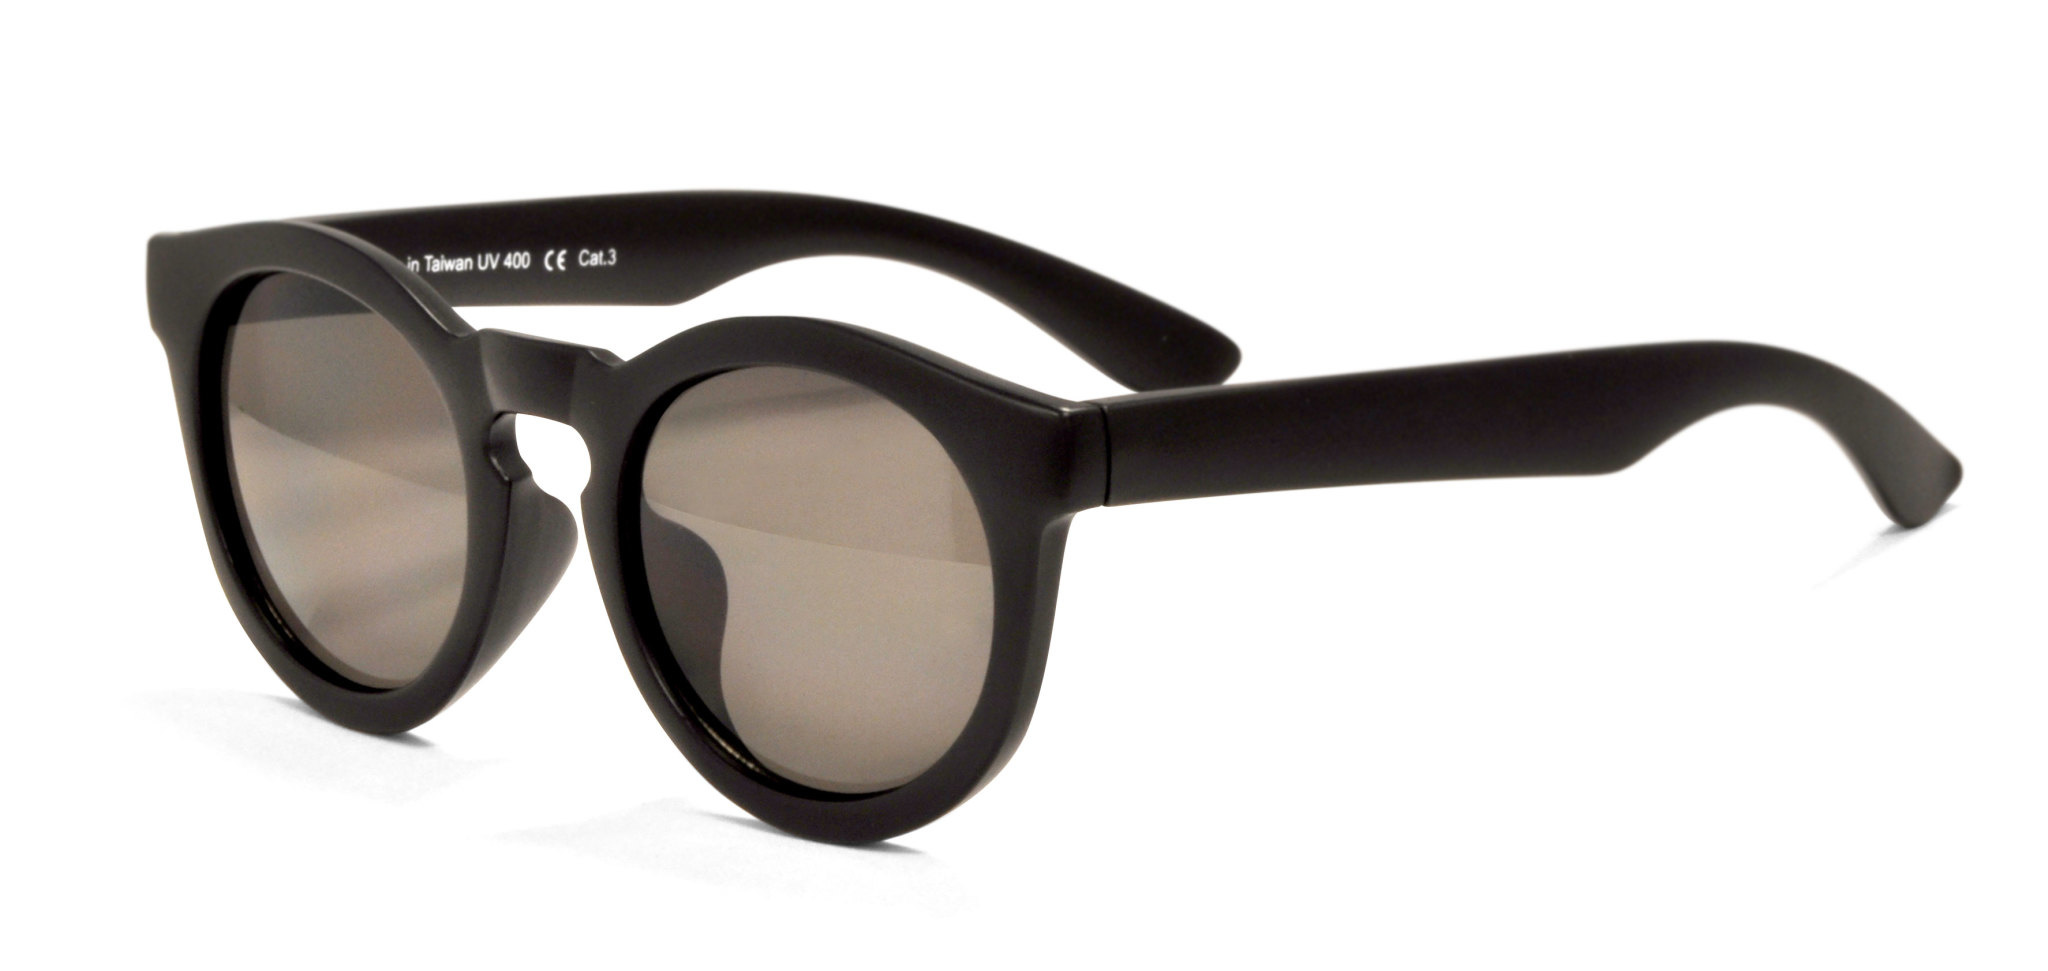 Real Shades Chill Glasses Black Size 4+